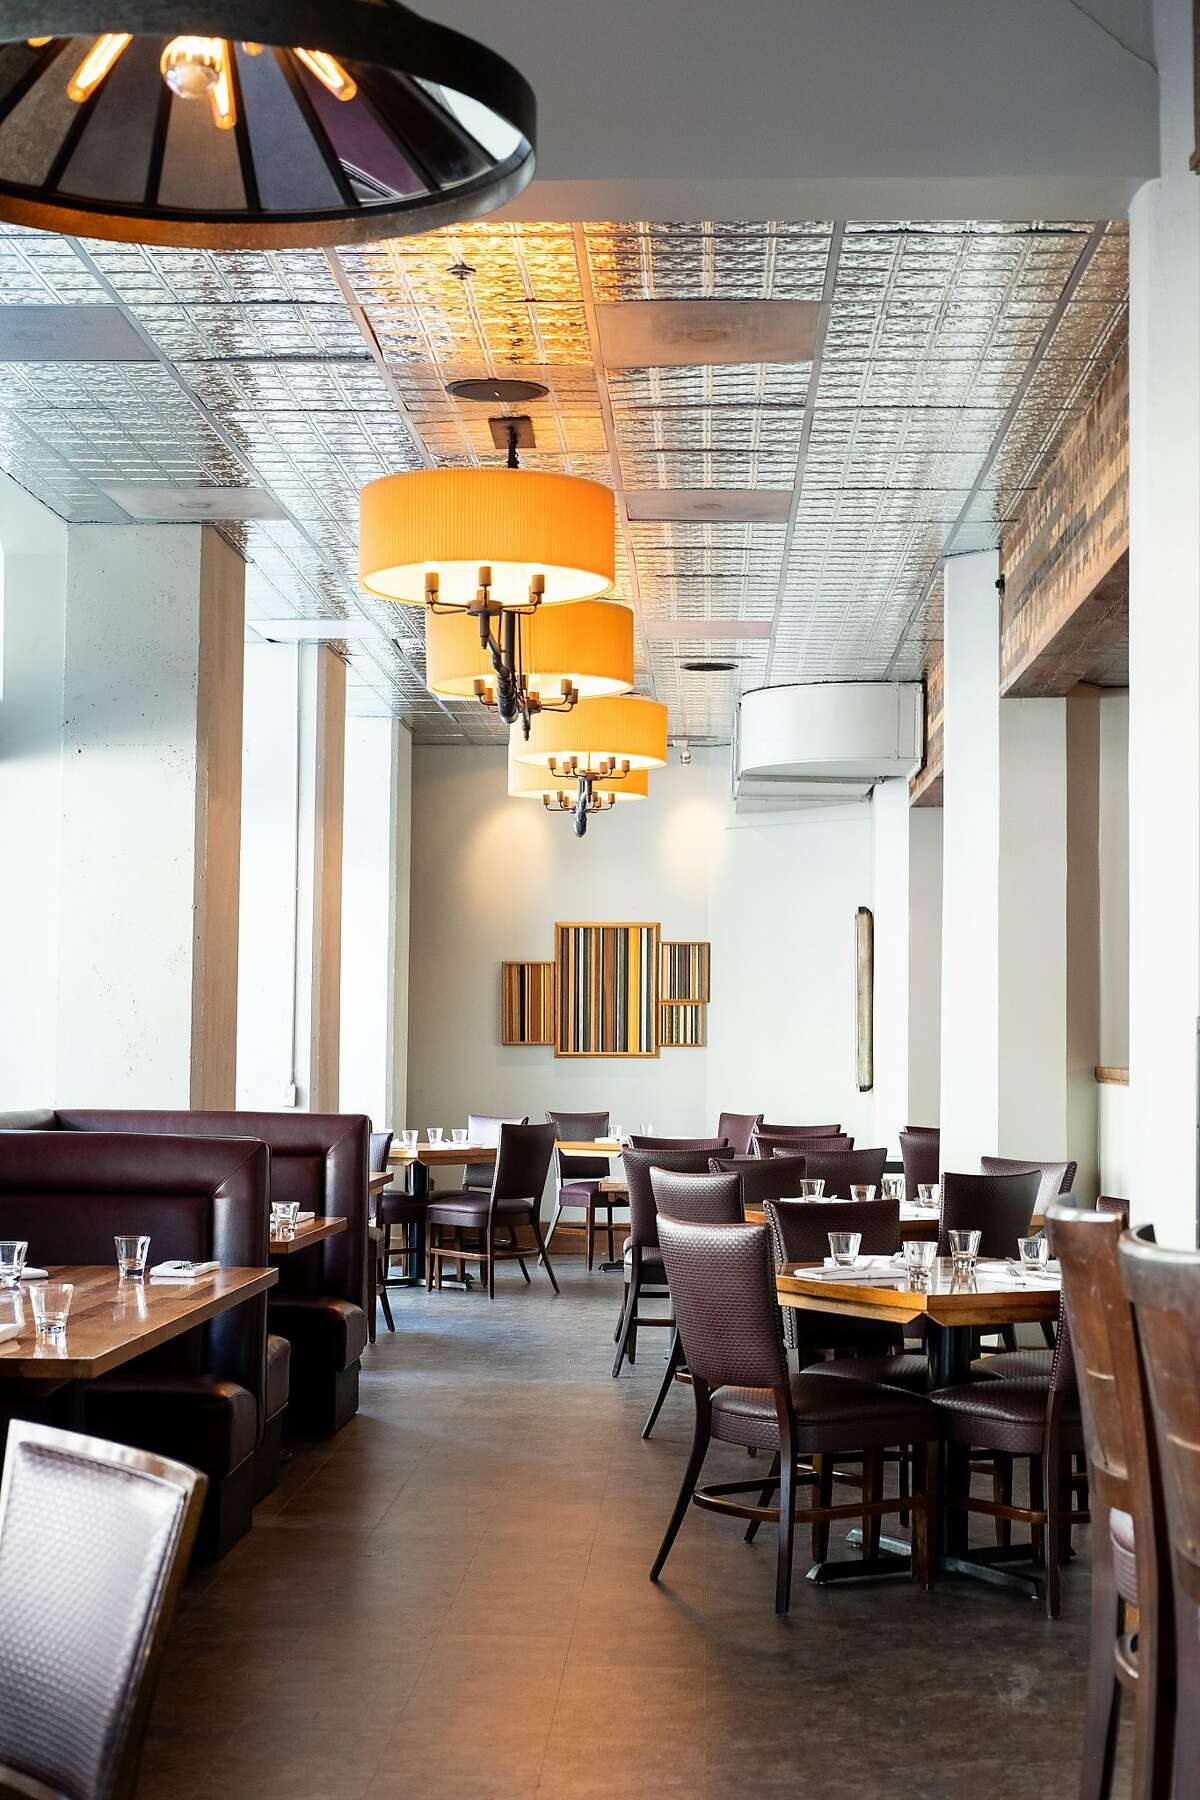 Tribune Tavern reopened with one of the original owners, Chris Pastena, at the helm.